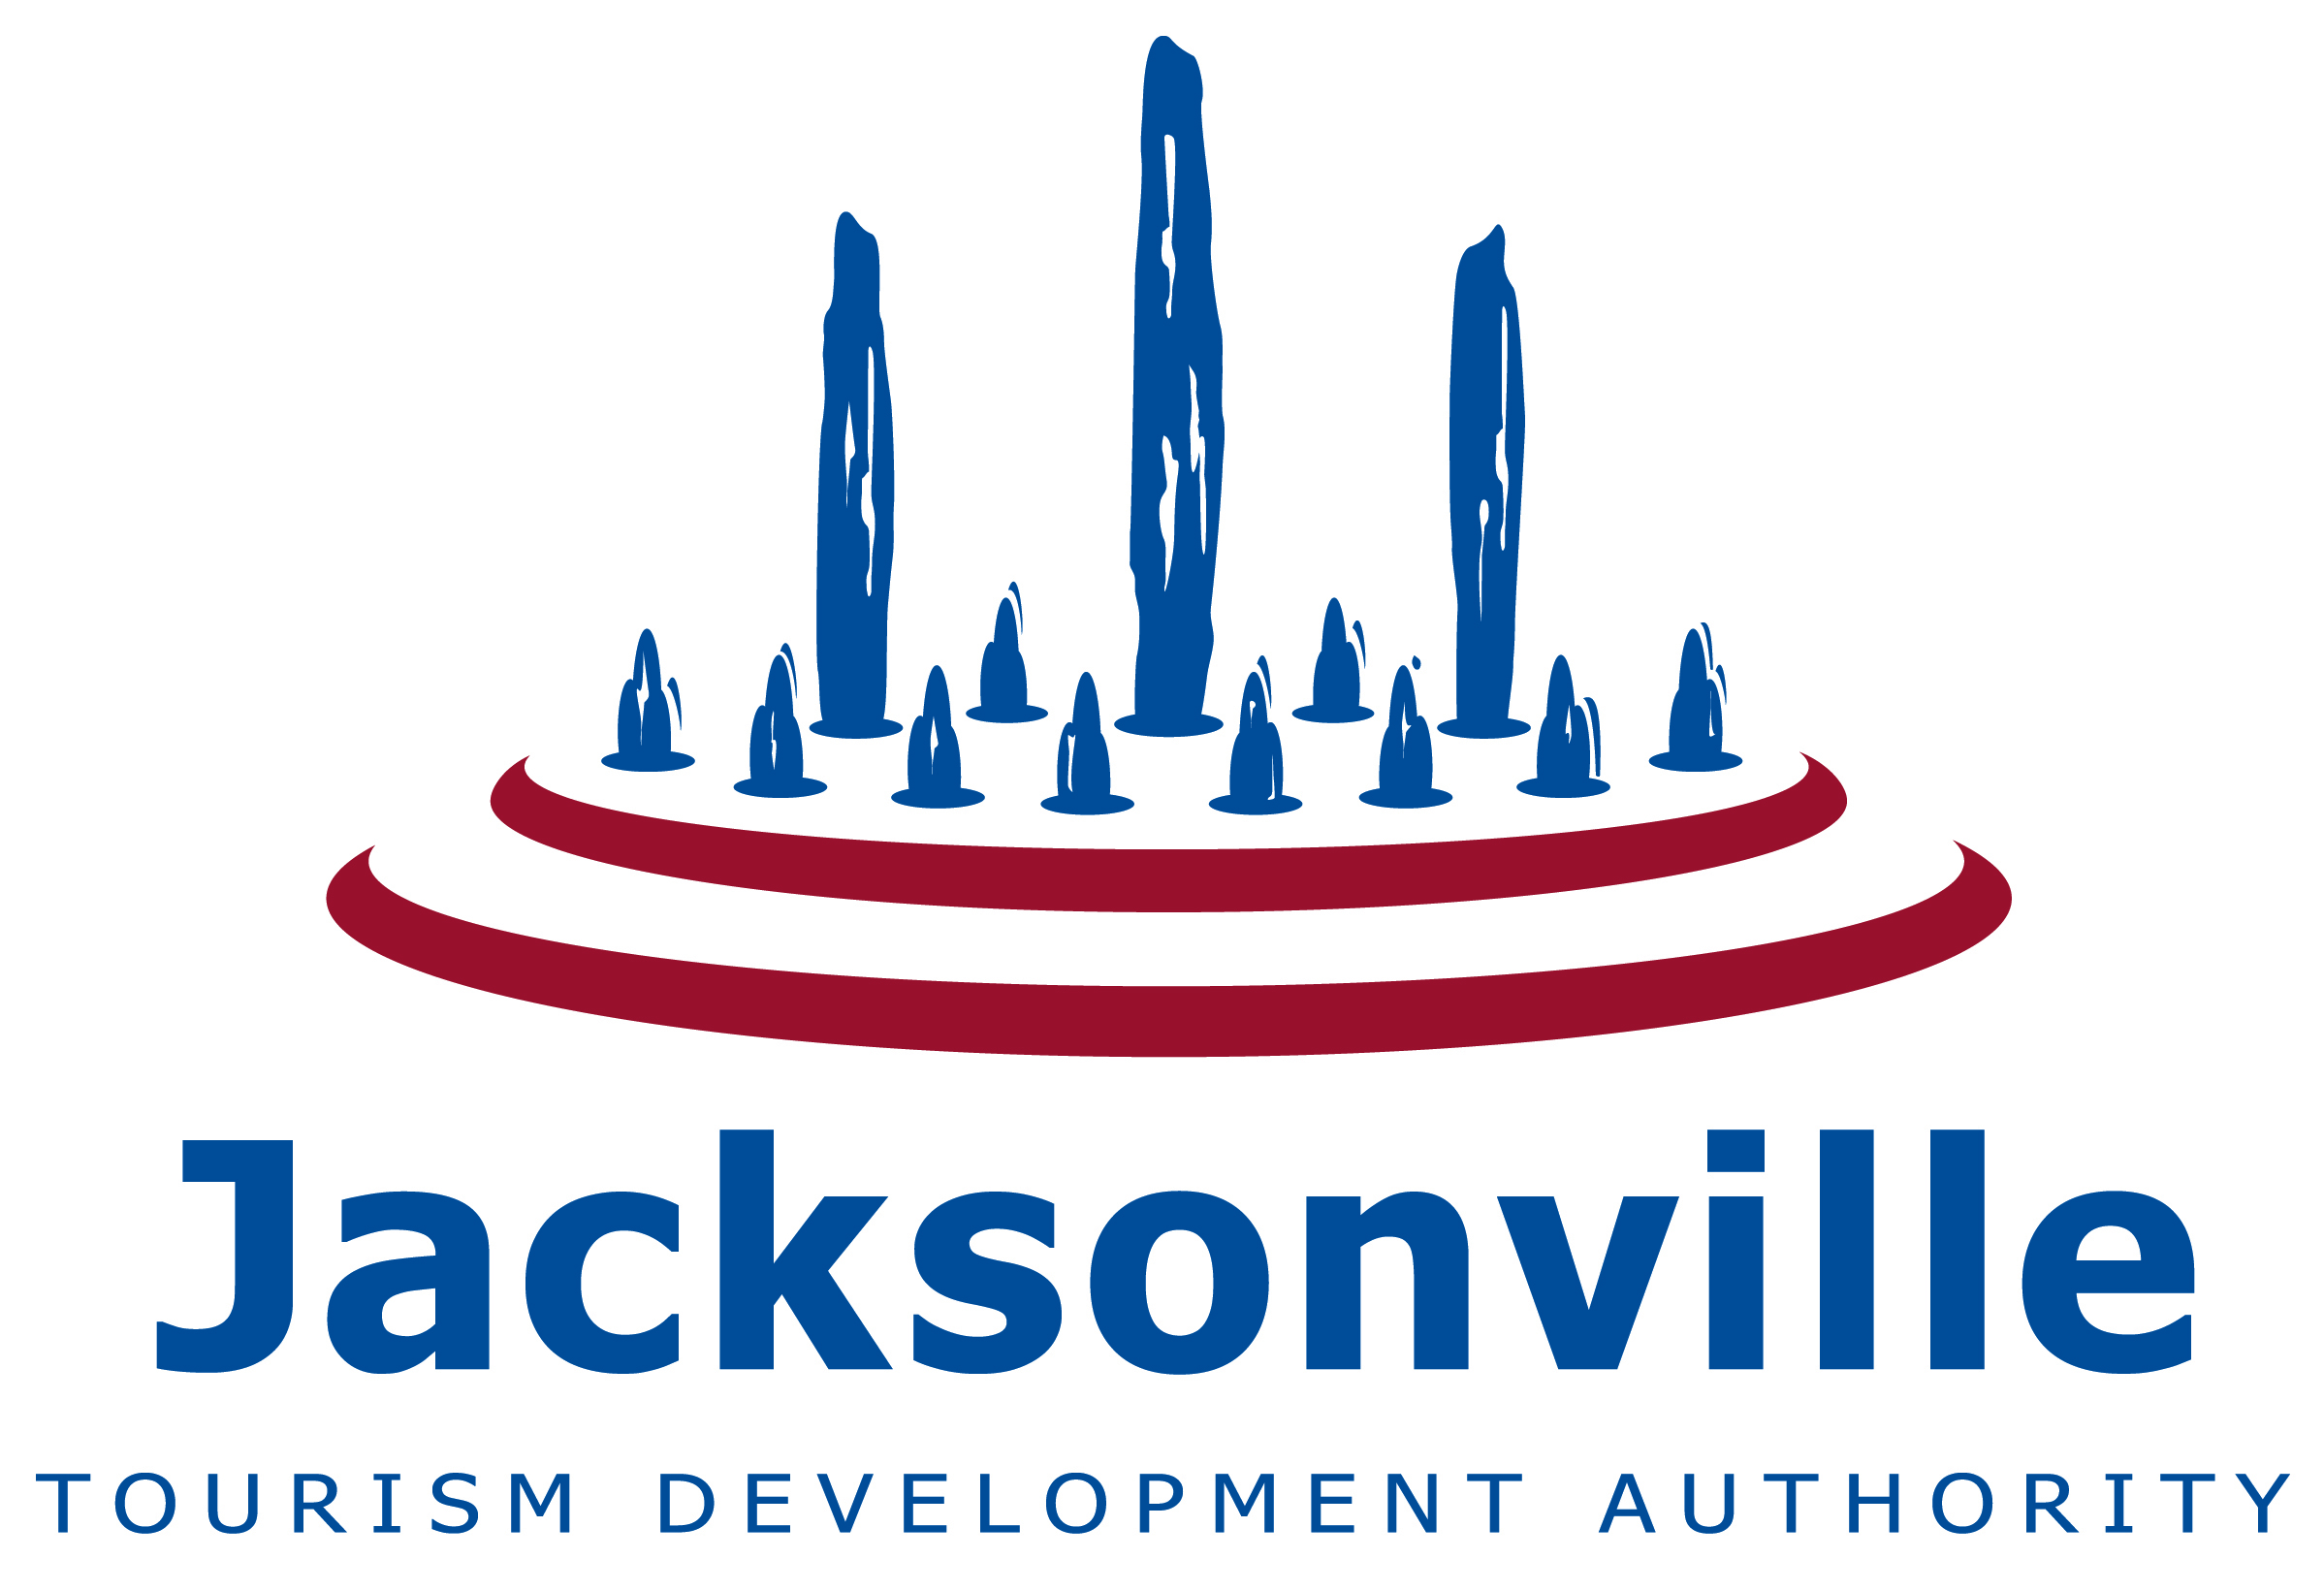 Jacksonville Tourism Development Authority logo